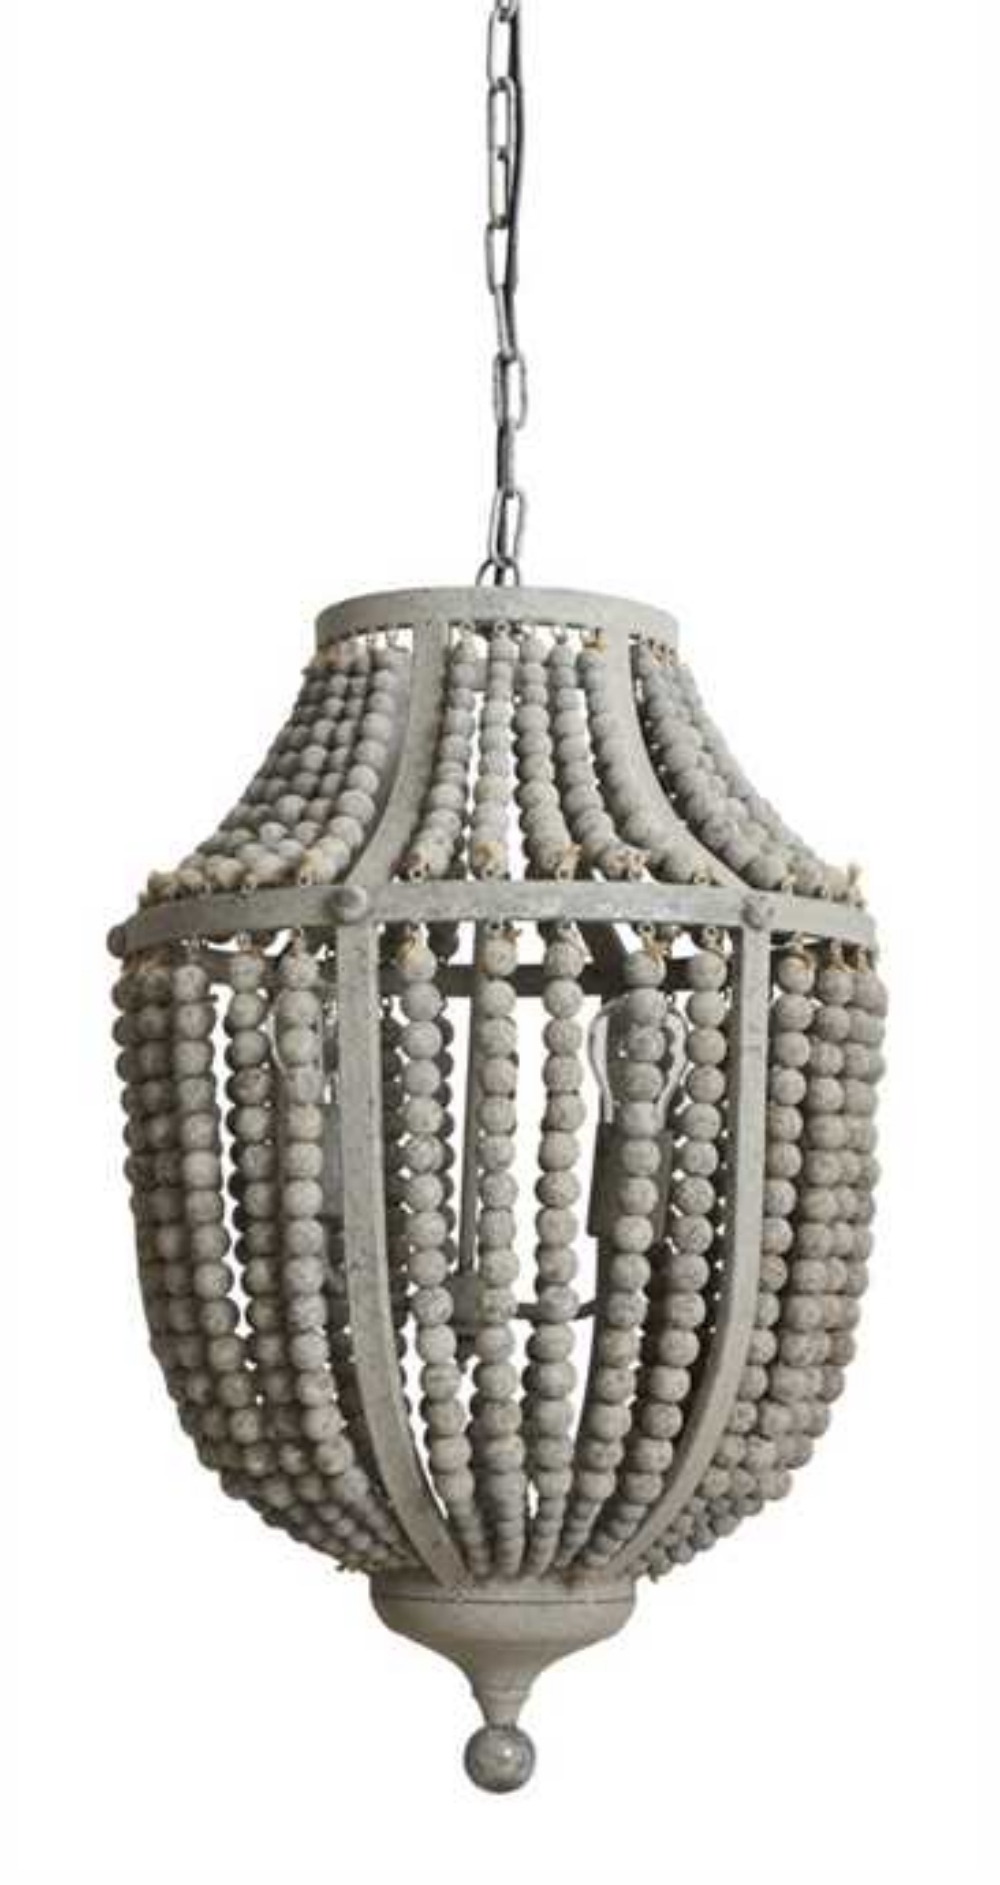 Grey Chandelier Wall Lights : Gray Aged Iron and Wooden Bead Chandelier Hanging Light Fixture - The Kings Bay